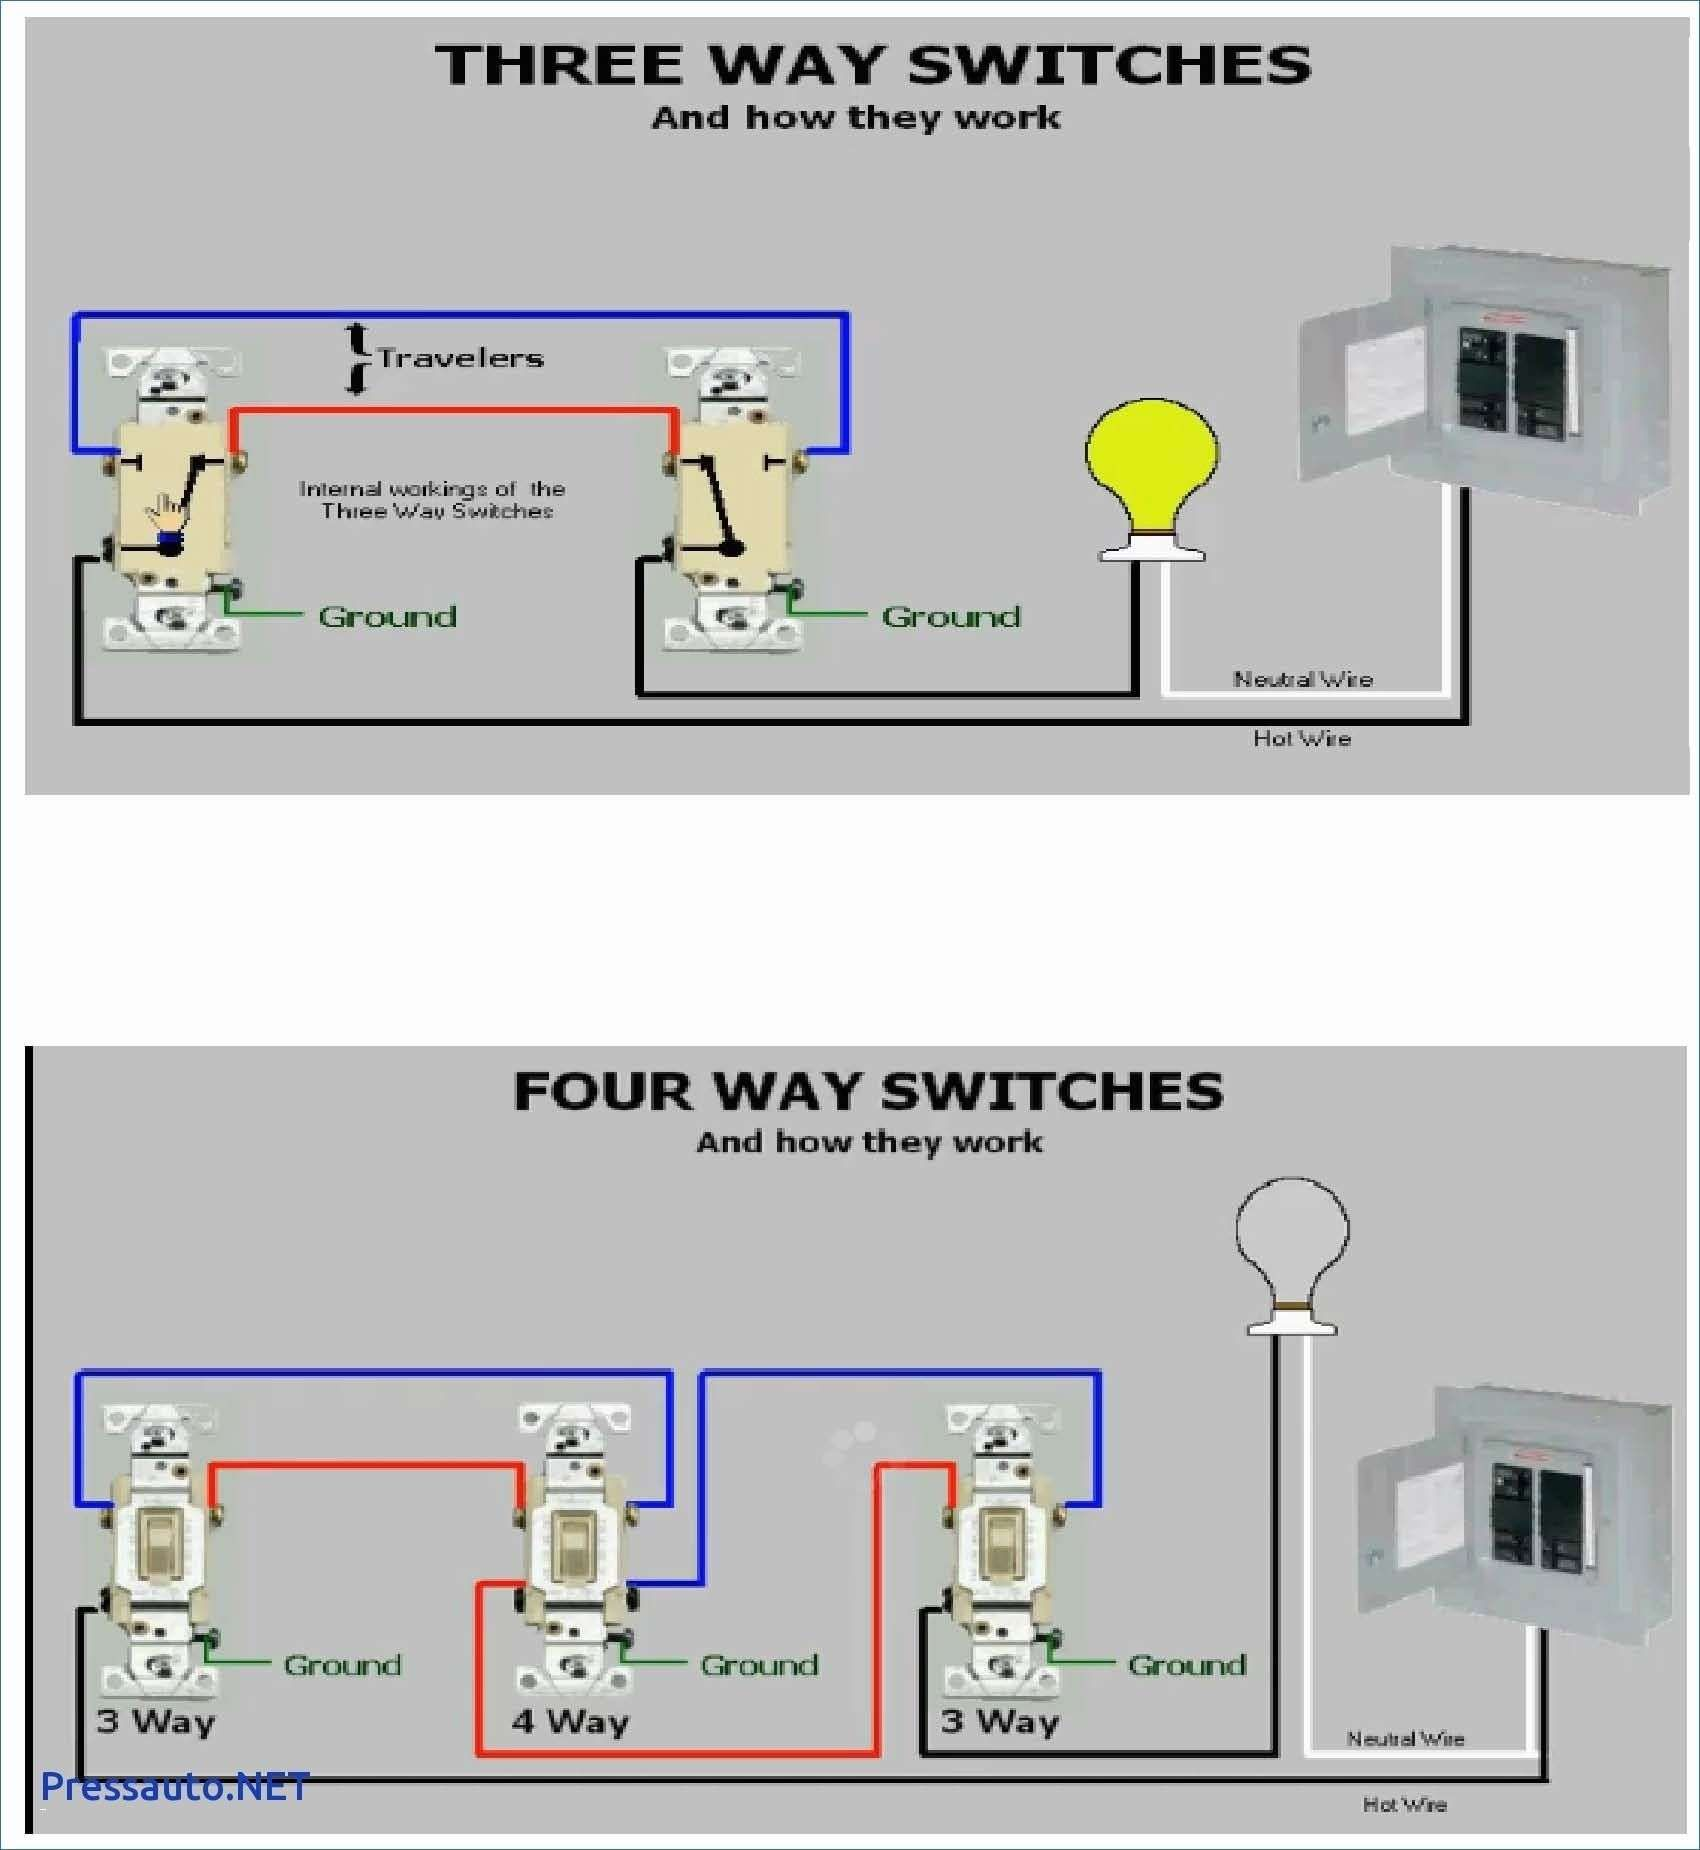 Wiring Diagram 3 Way Switch New 3 Way Smart Switches Wiring Diagram New Ge Z Wave 3 Way Switch Electrical Switch Wiring 3 Way Switch Wiring Three Way Switch